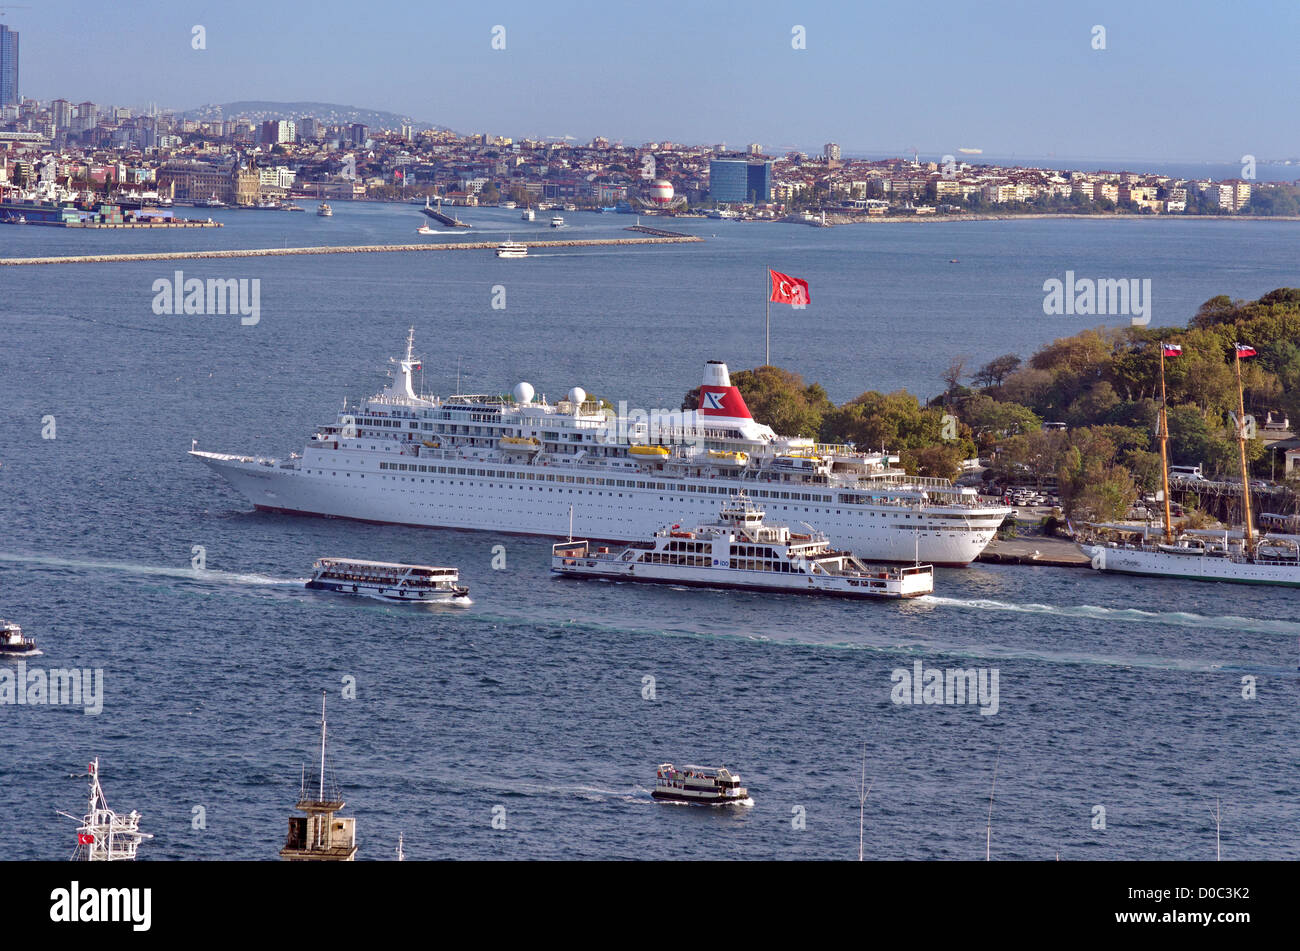 The Bosphorus at Istanbul with Fred Olsen Line's 'Black Watch' berthed at the Cruise dock adjacent to - Stock Image